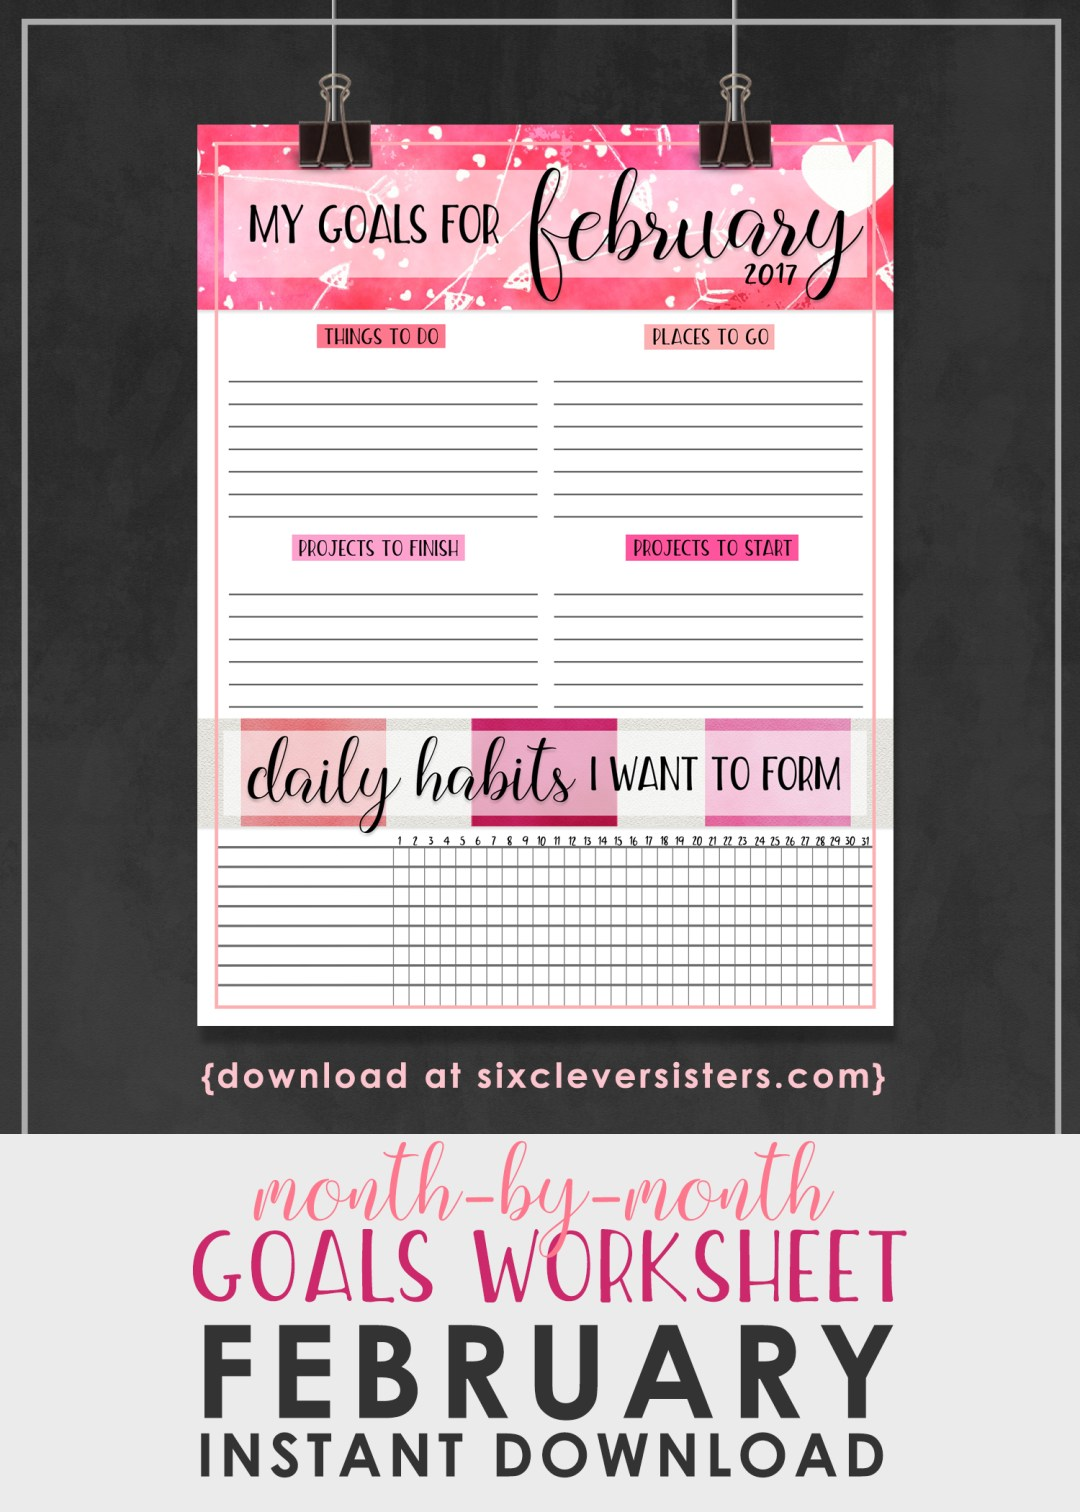 Monthly Goals Worksheet February 2017